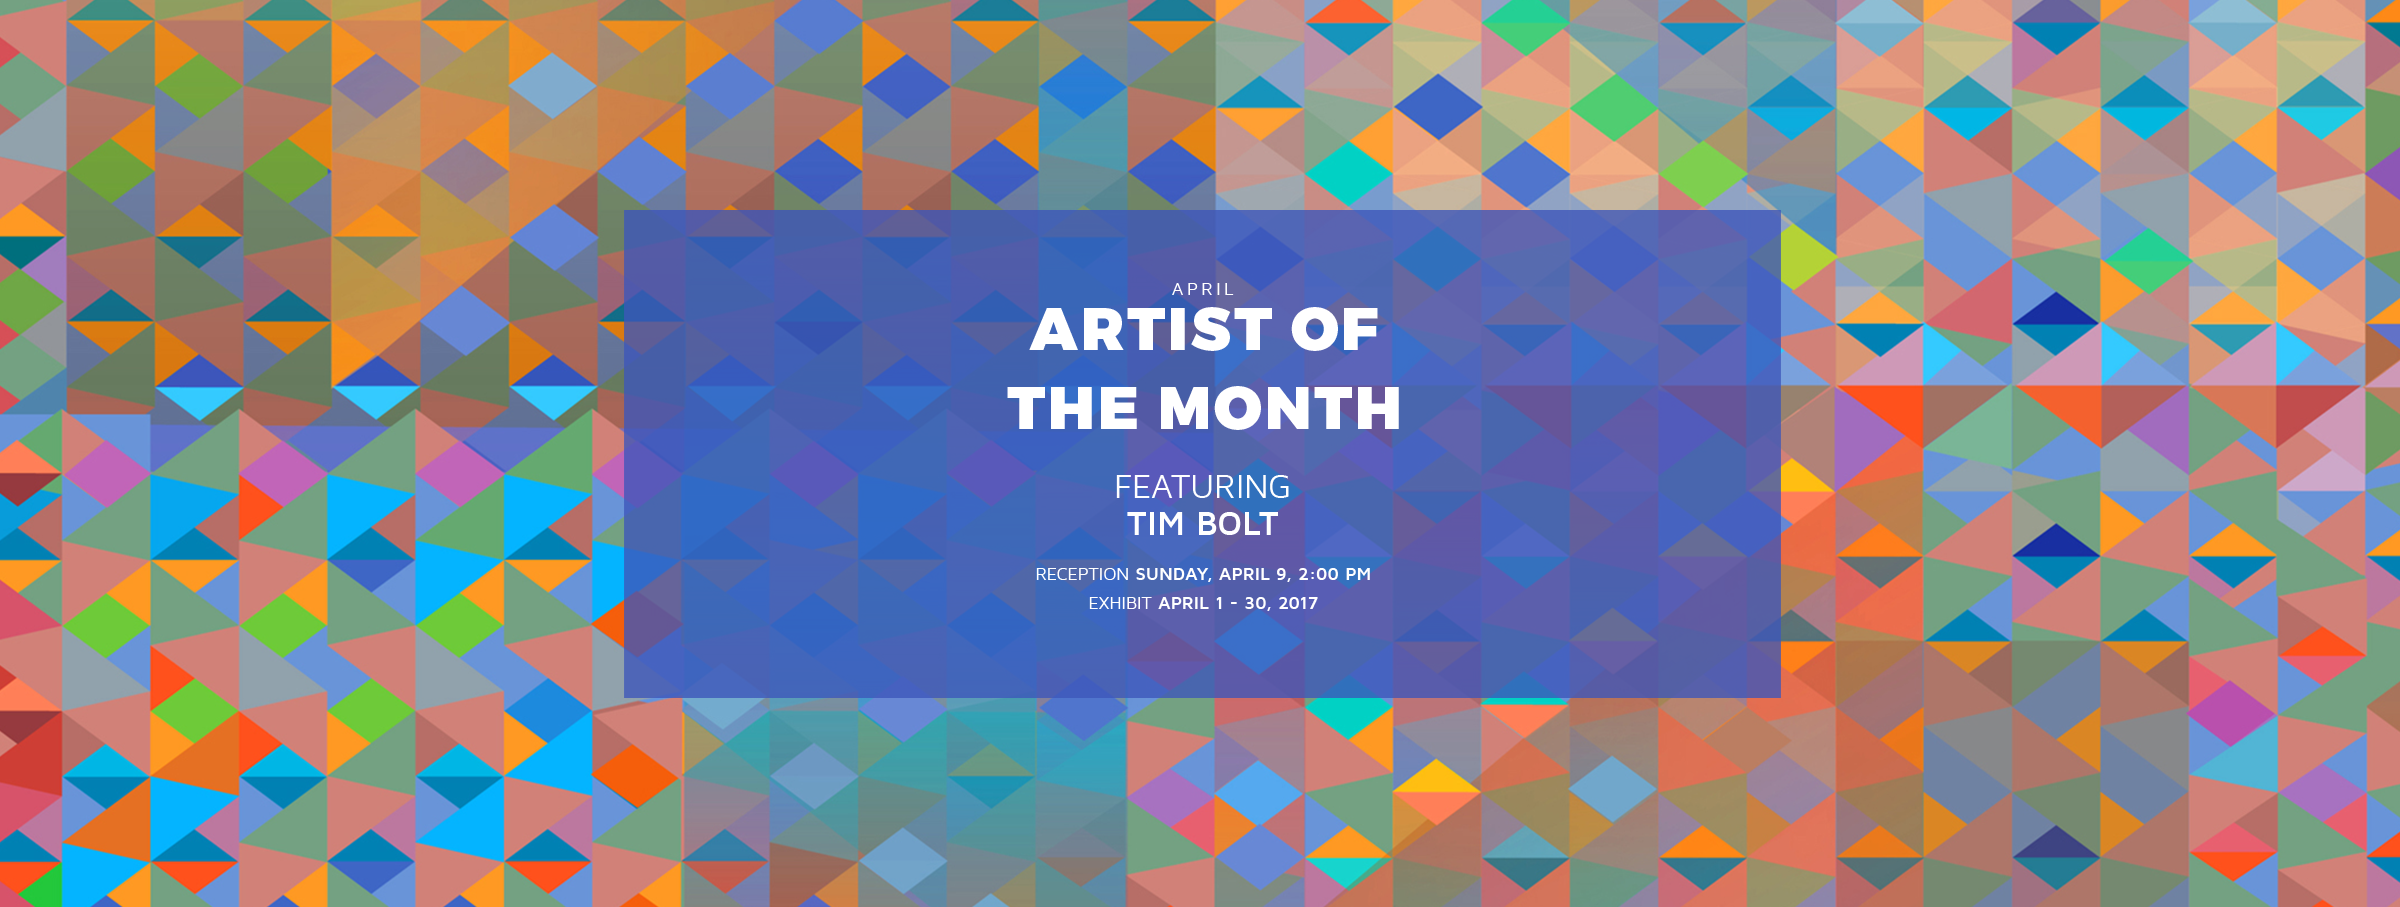 Free Things to do in Dallas: Tim Bolt Exhibit at the Museum of Geometric and MADI Art